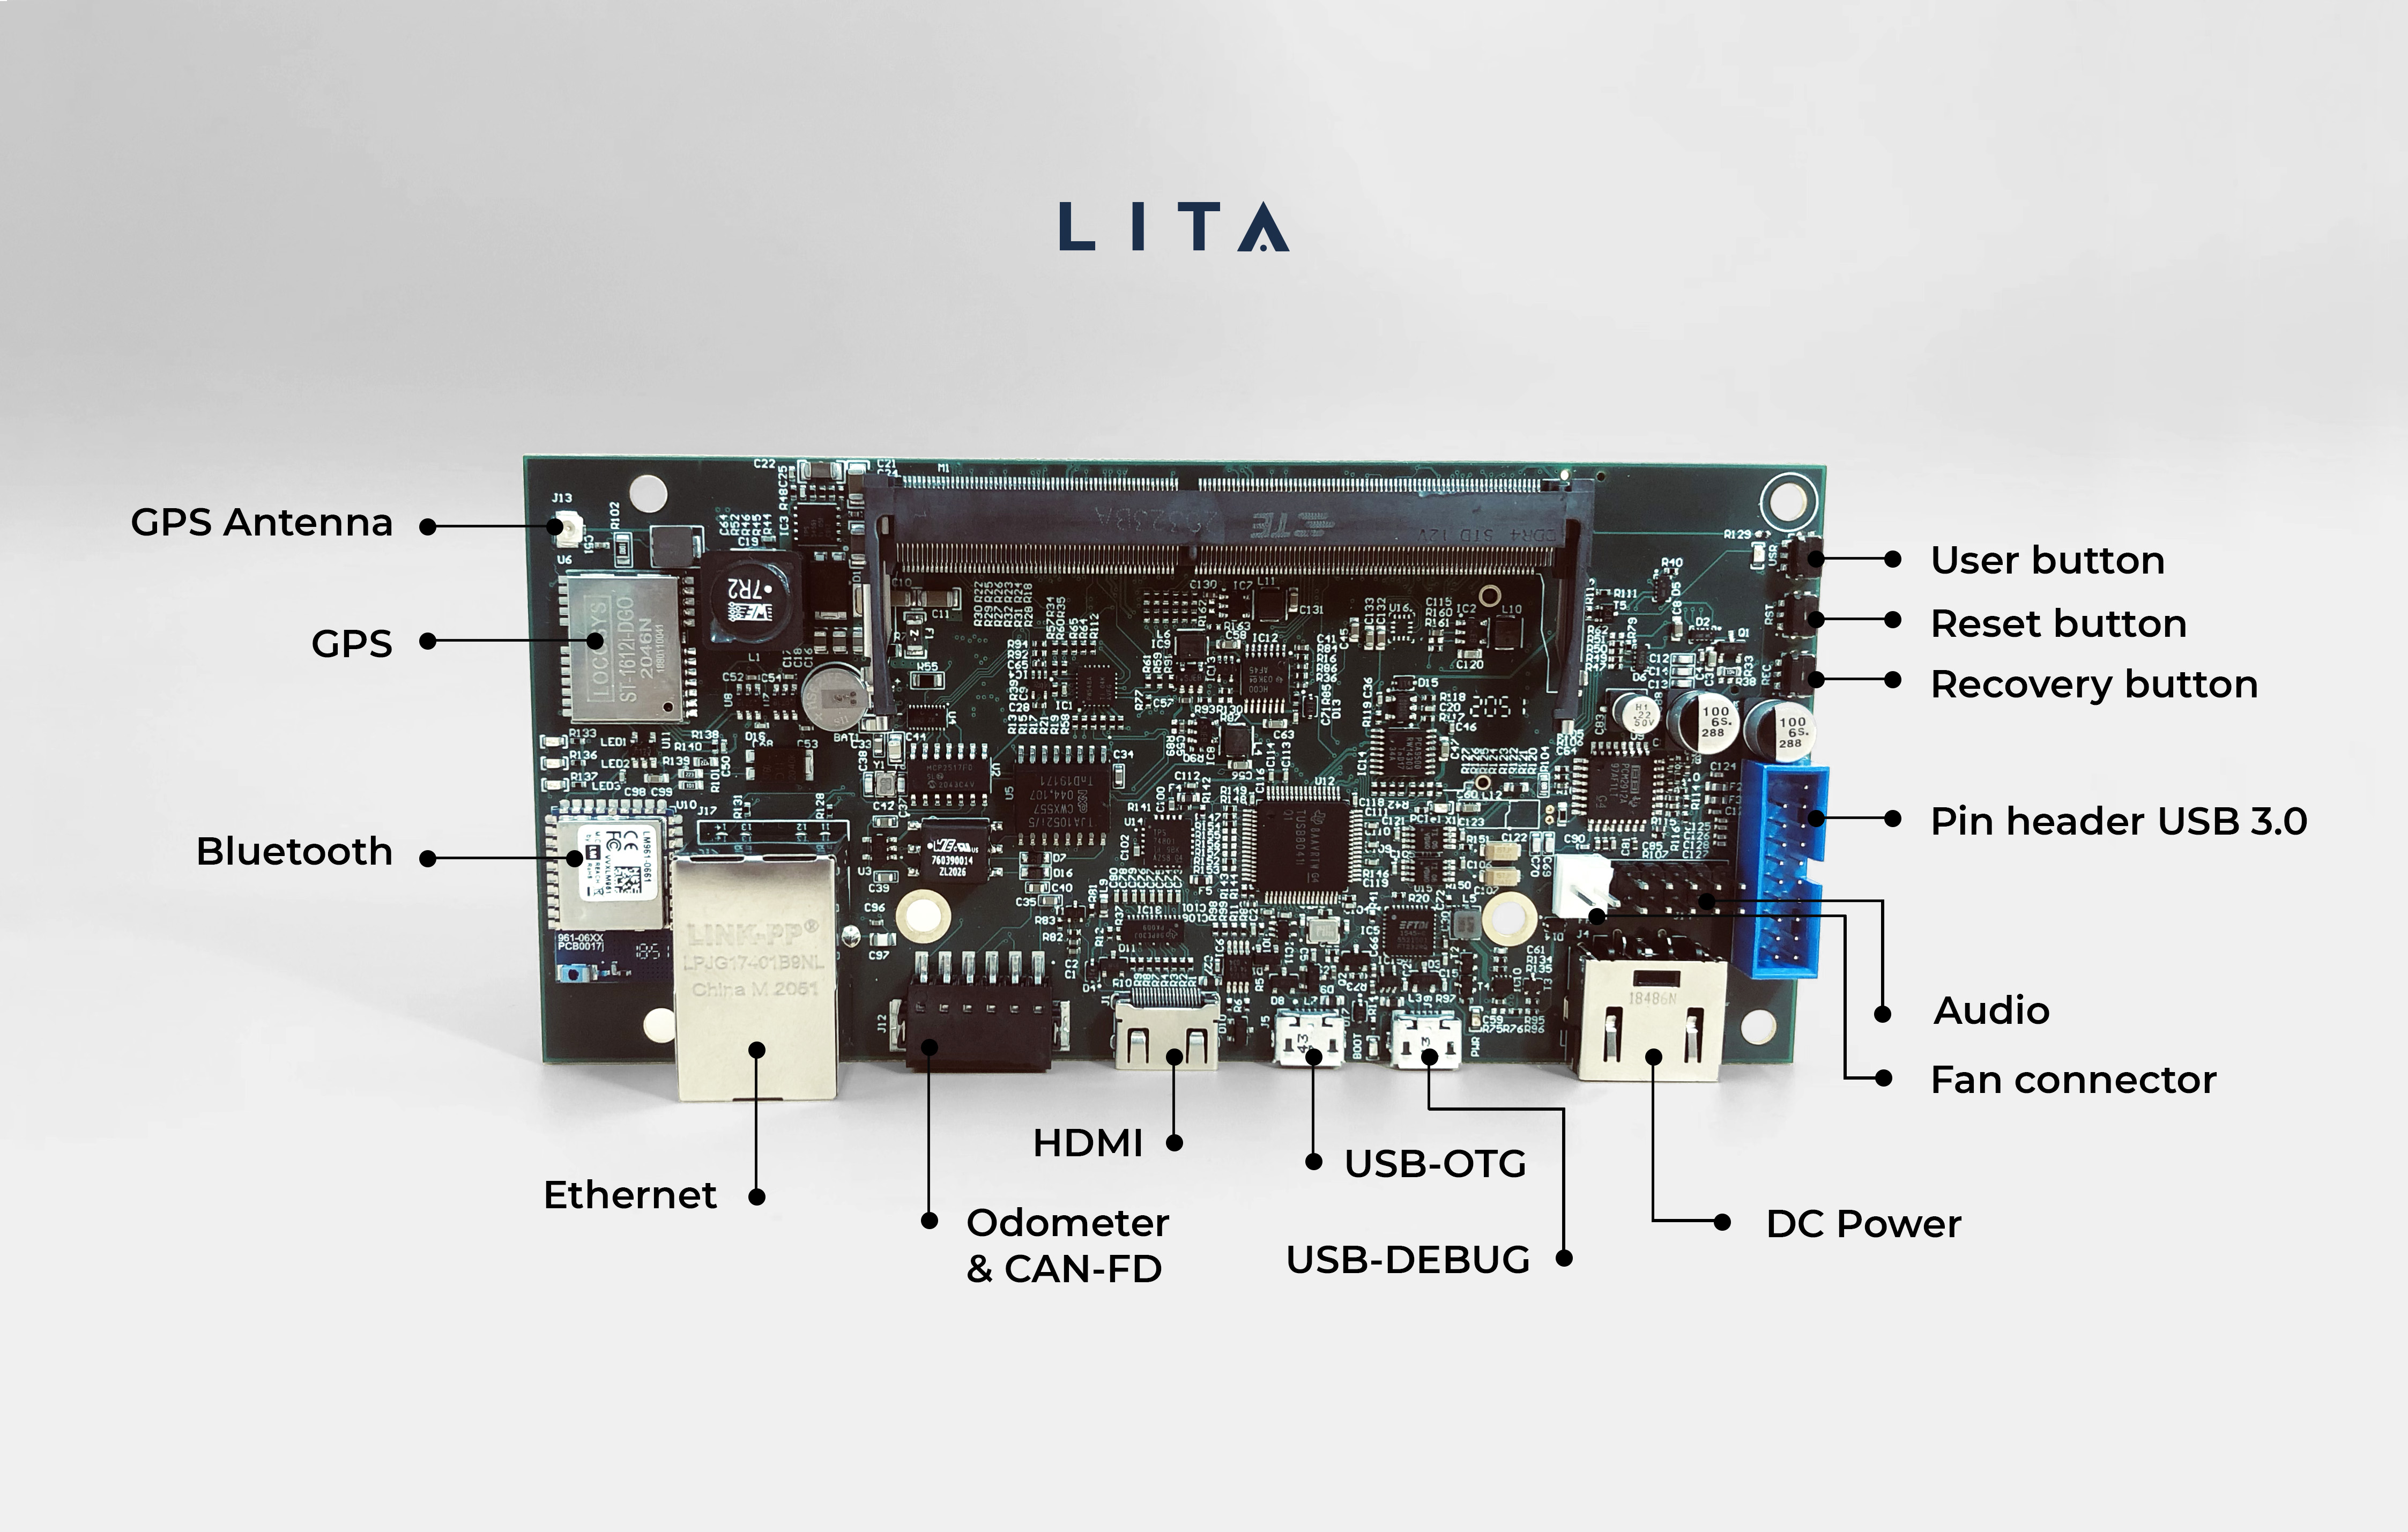 Carrier board for NVIDIA Jetson